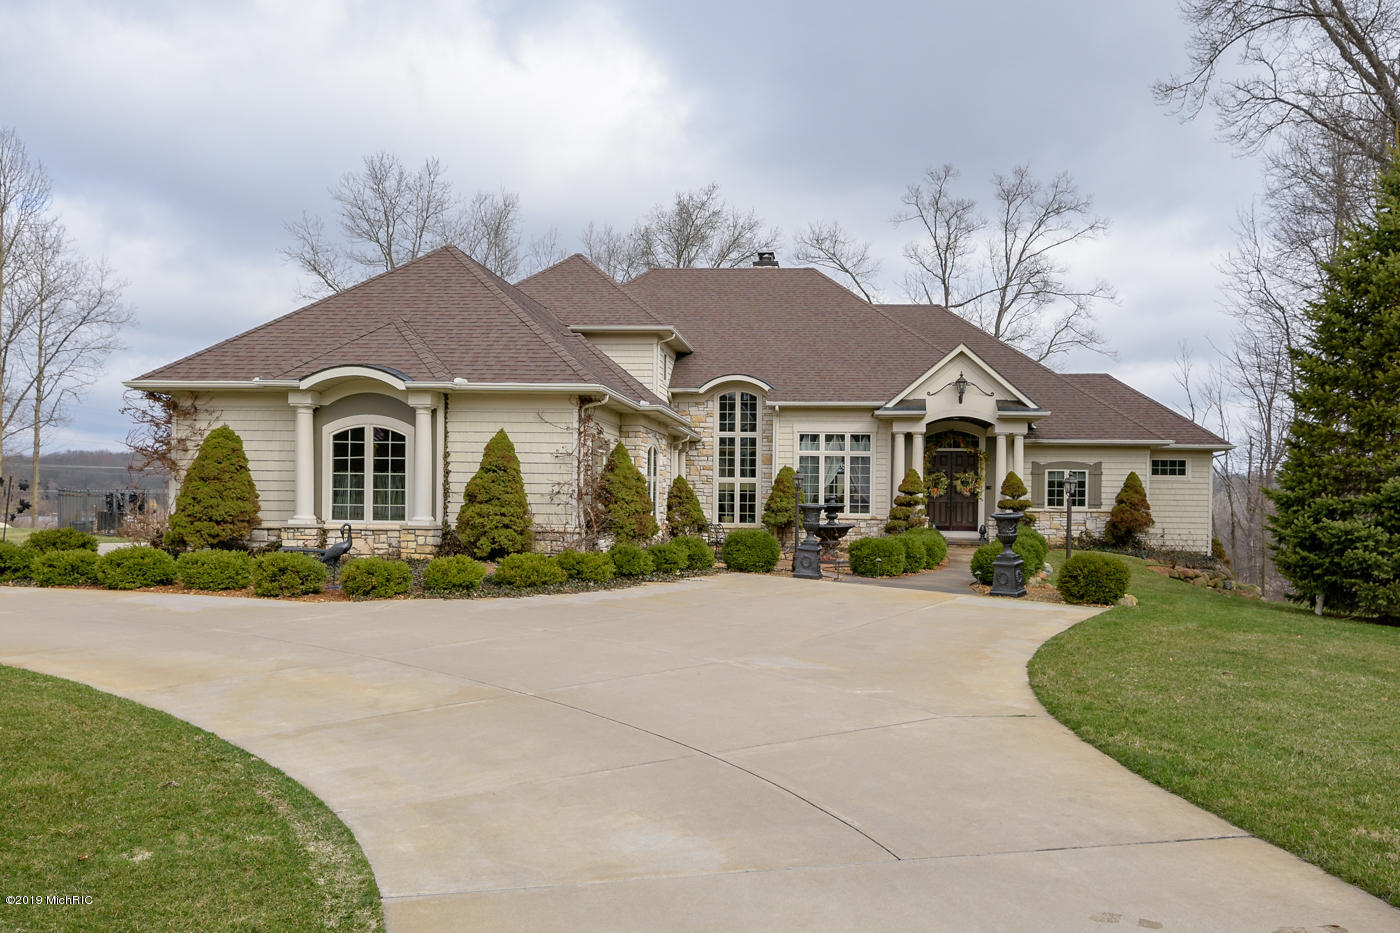 8894 Marsh Creek Circle, Galesburg, MI 49053